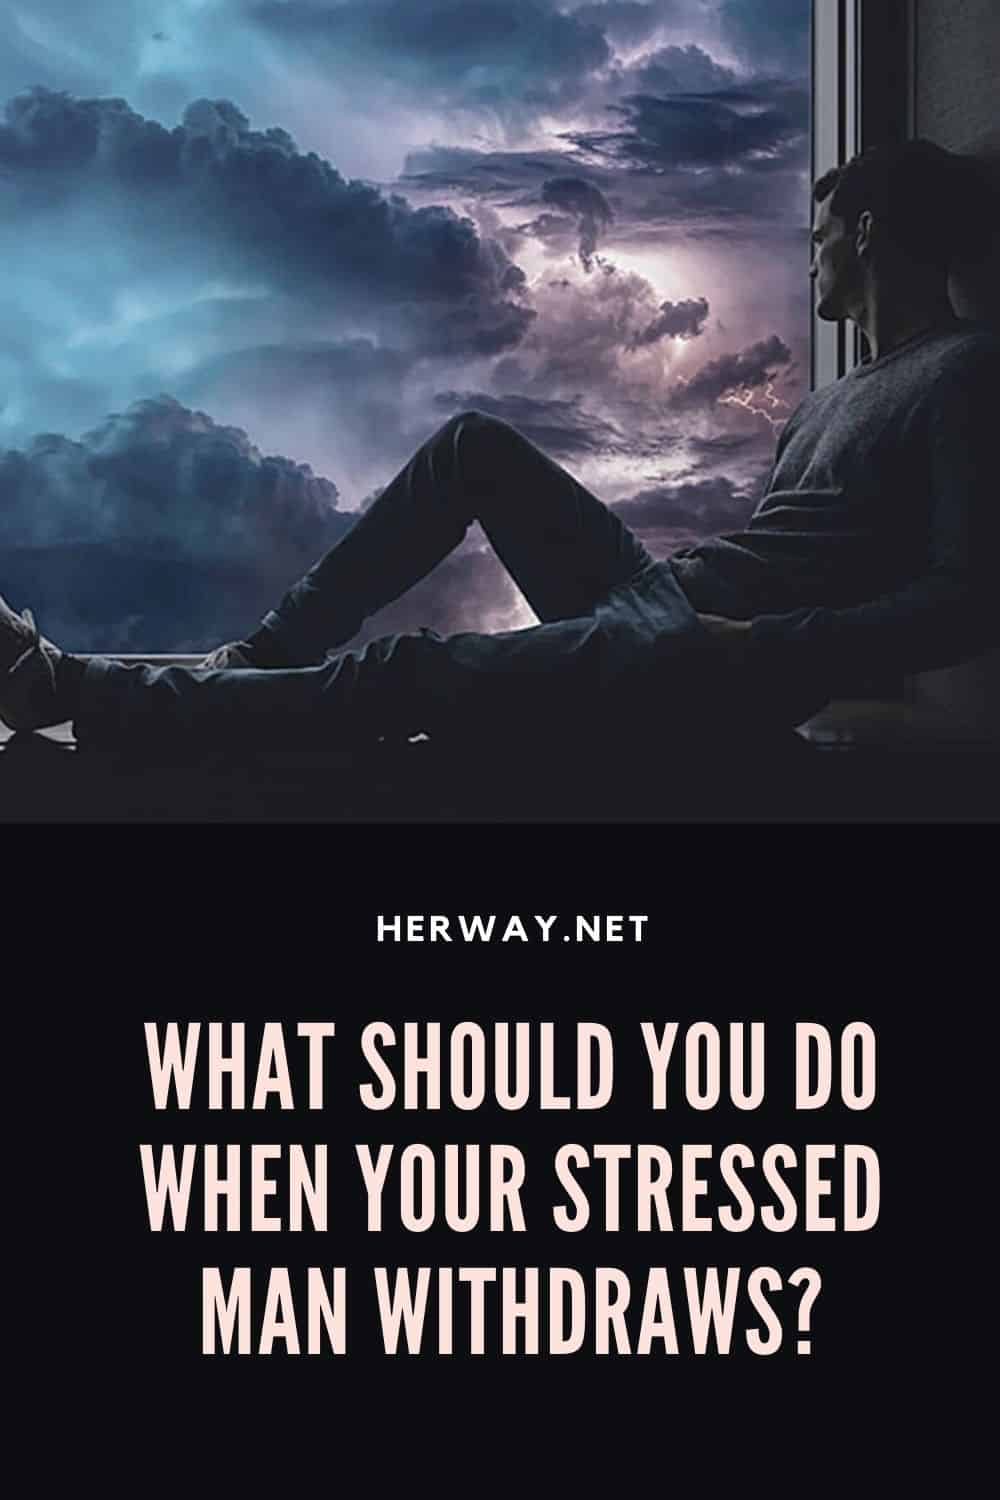 What Should You Do When Your Stressed Man Withdraws?